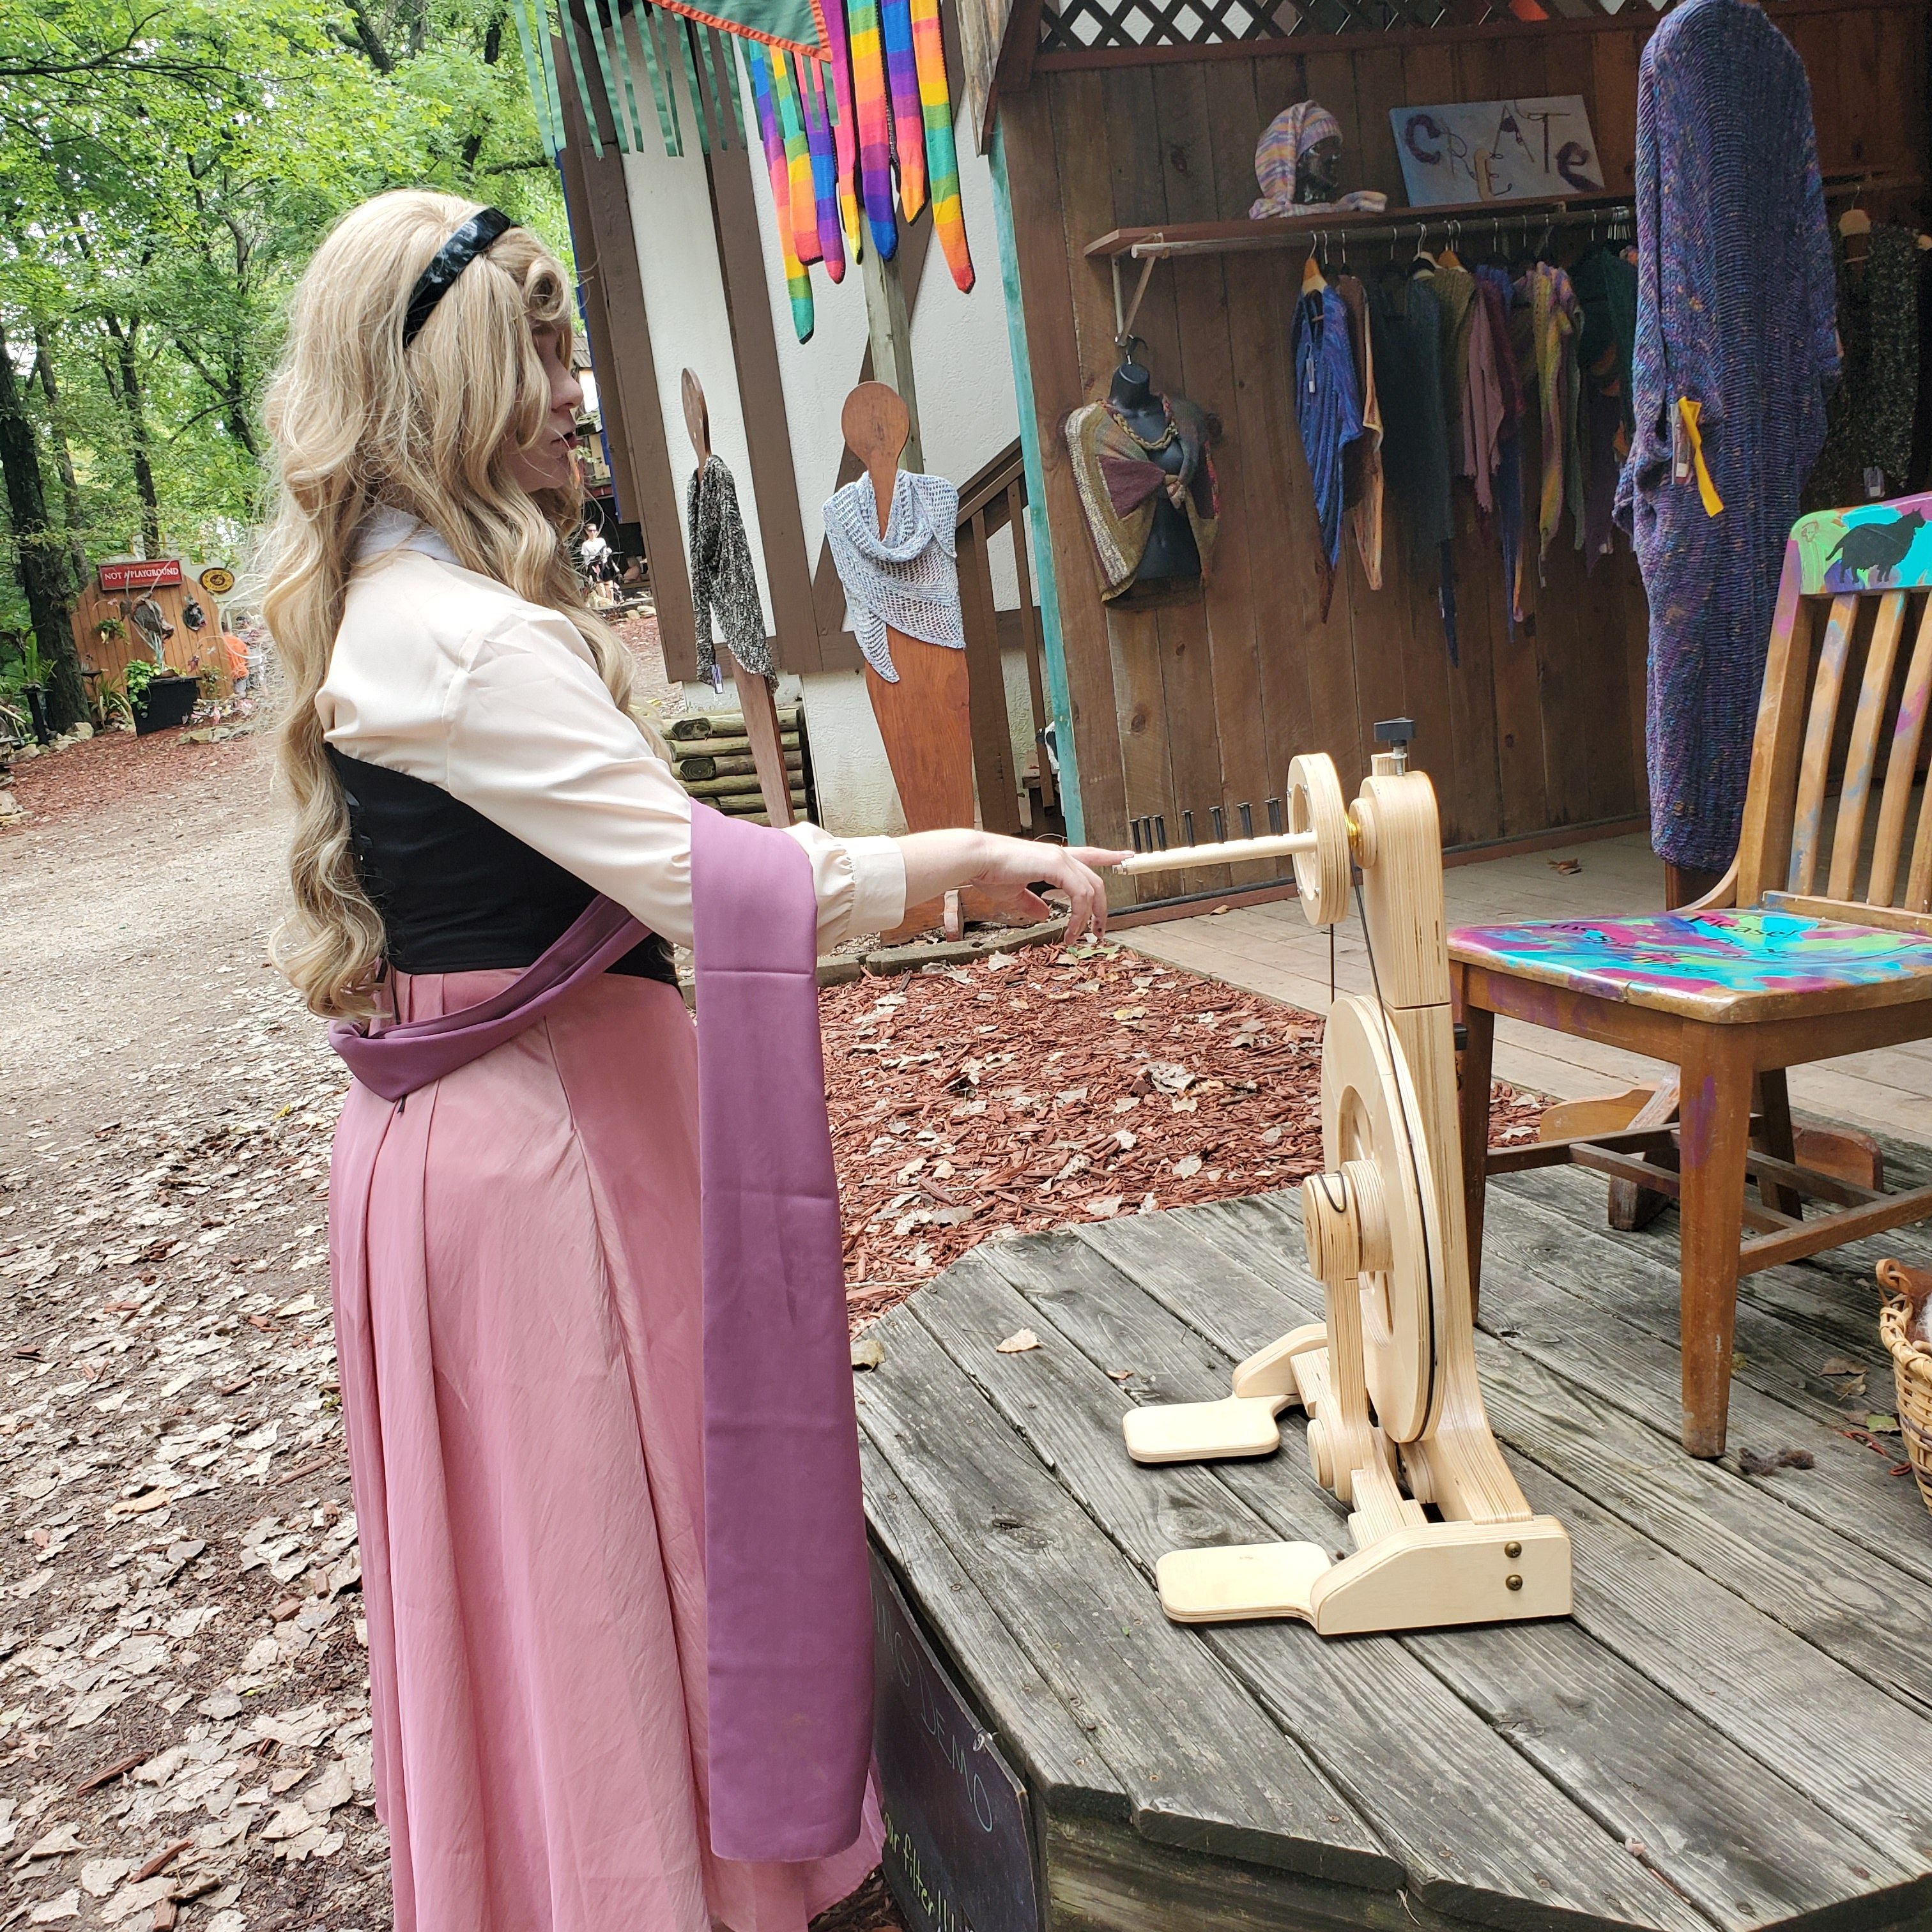 Sleeping Beauty pricking her finger on the spinning wheel